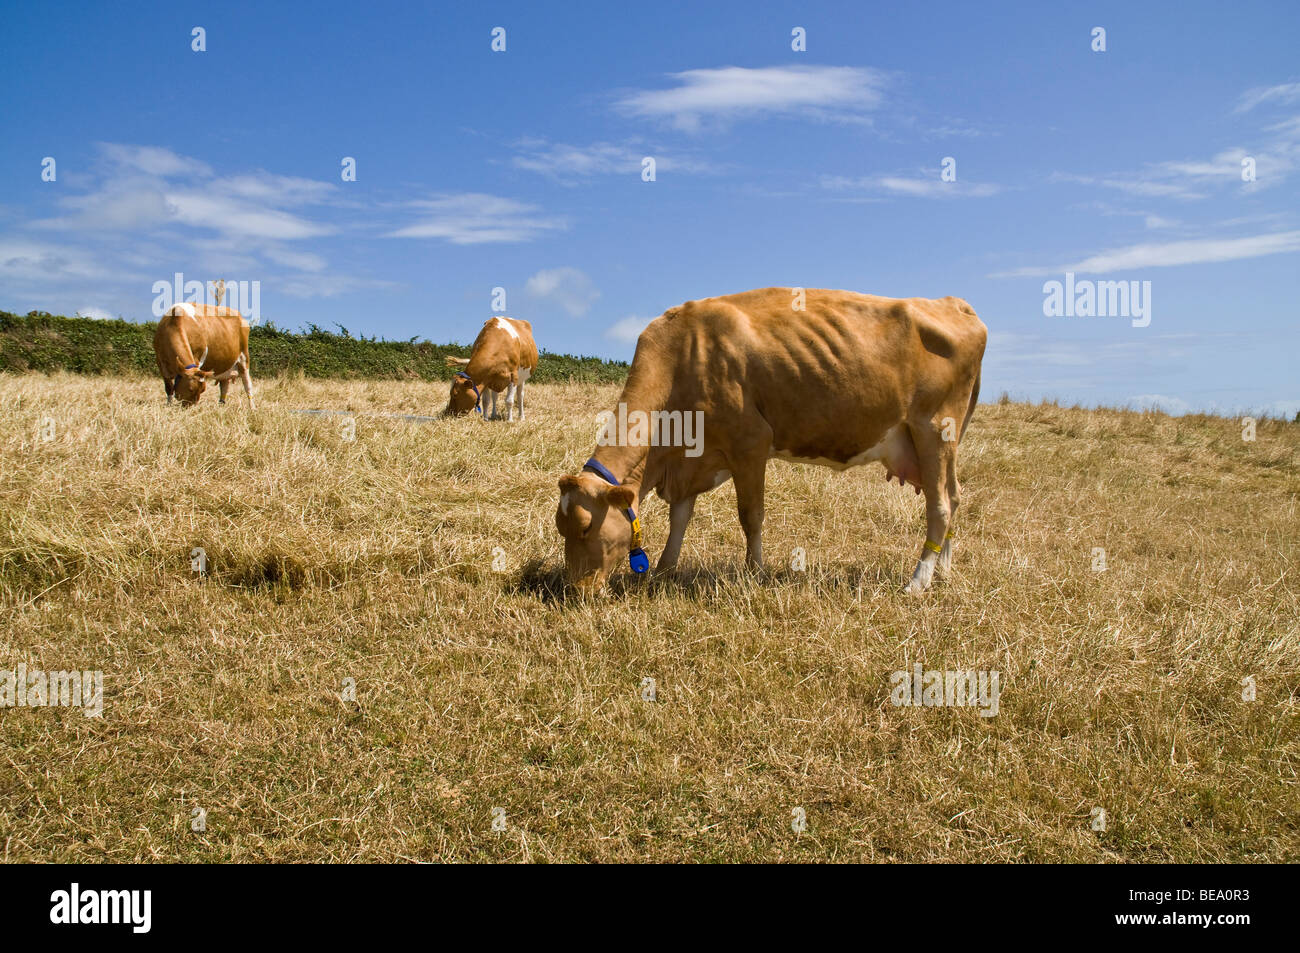 dh Guernsey cow ANIMAL GUERNSEY Guernsey cows grazing in stubbled field - Stock Image